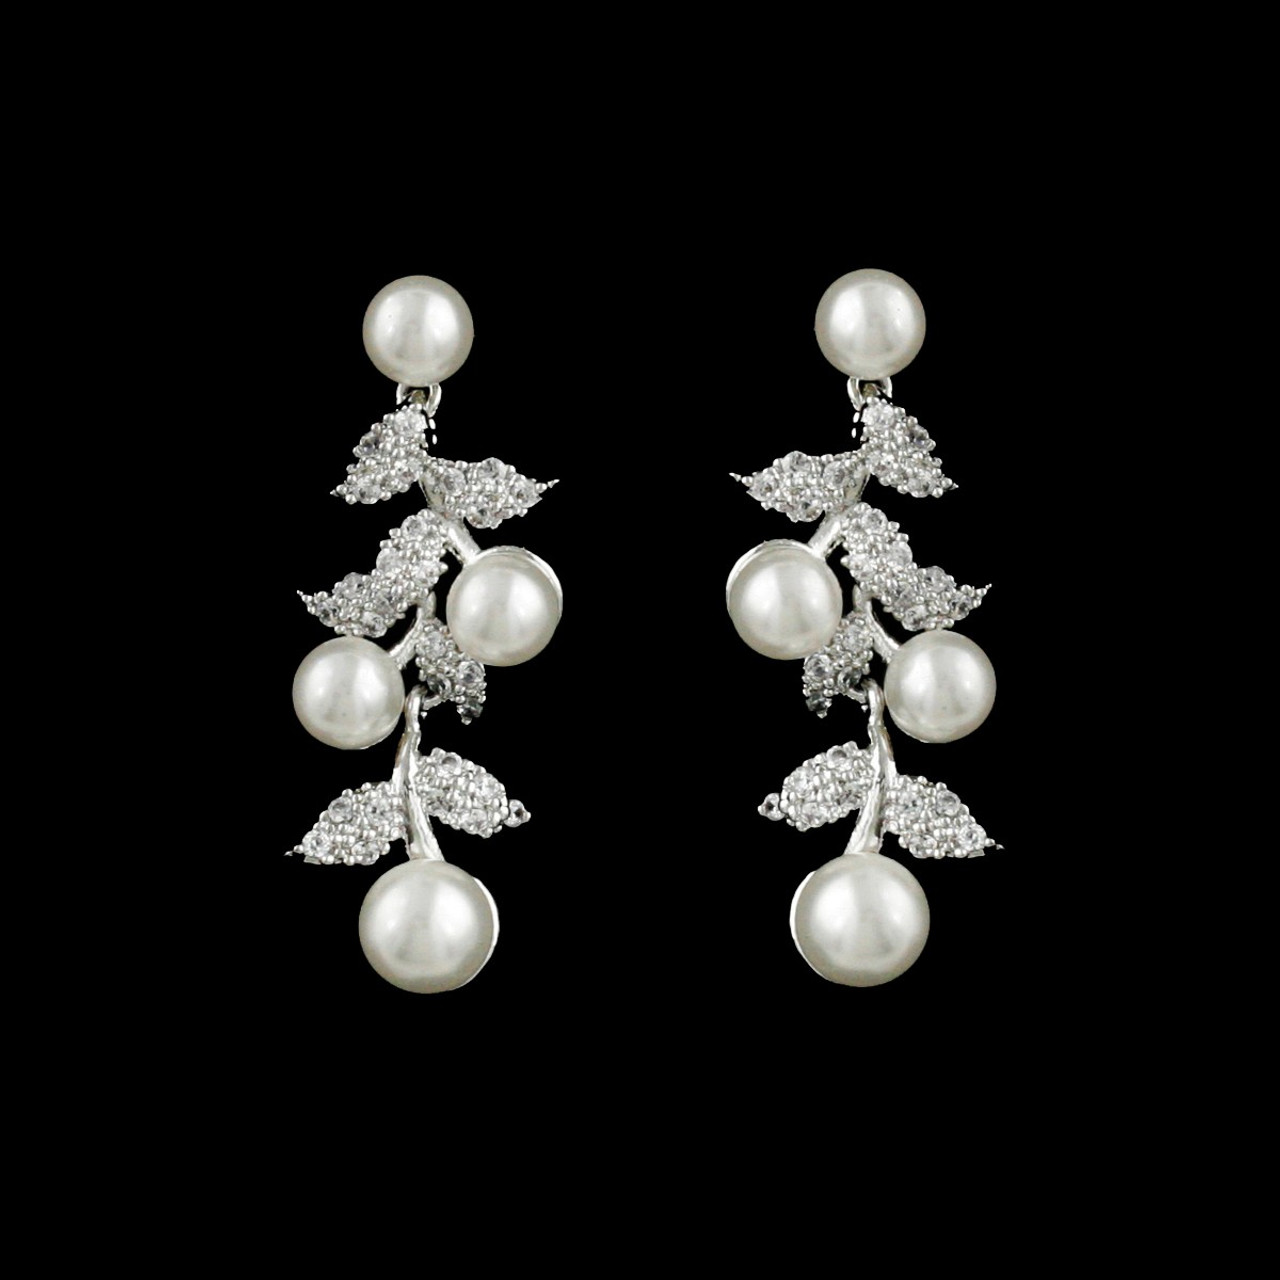 Formal Cubic Zirconia Earrings for Bridesmaids and Brides - #0418